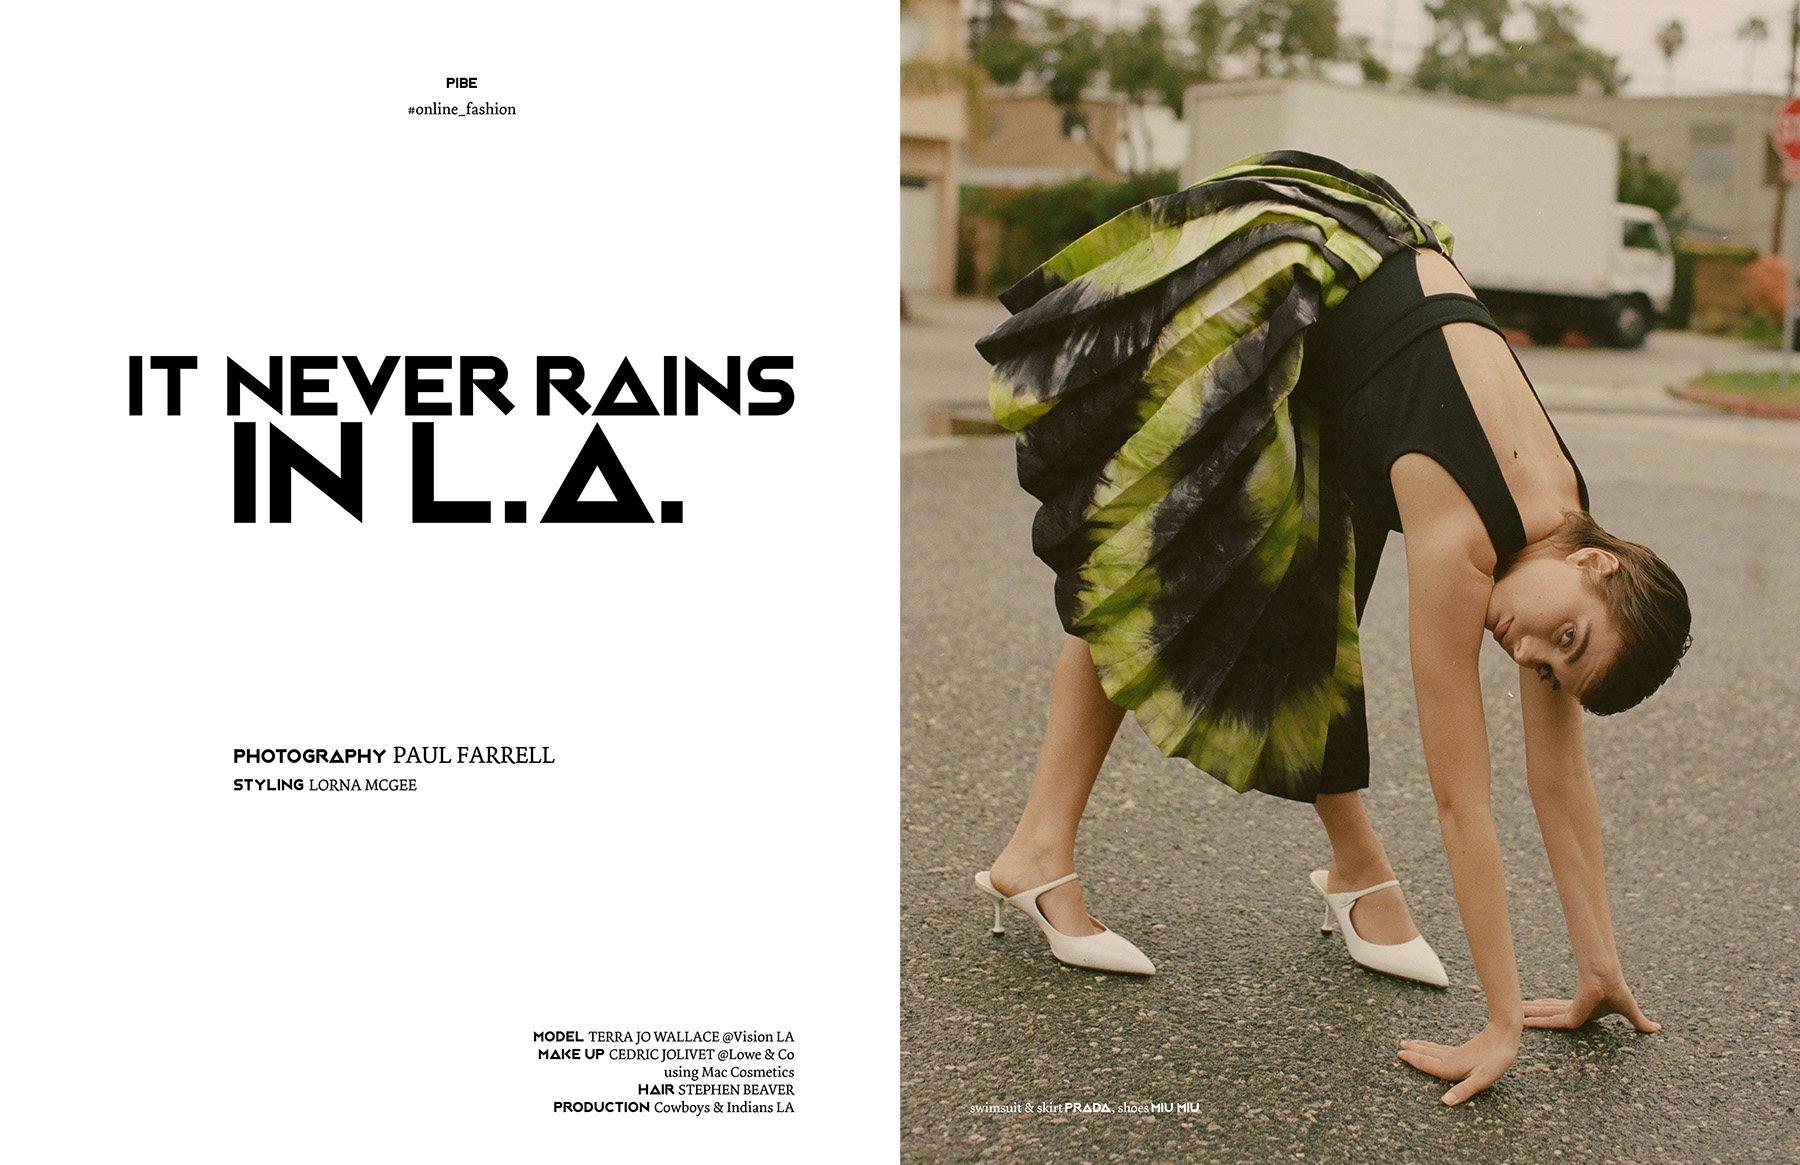 PIBE Magazine It never rains in LA.jpg